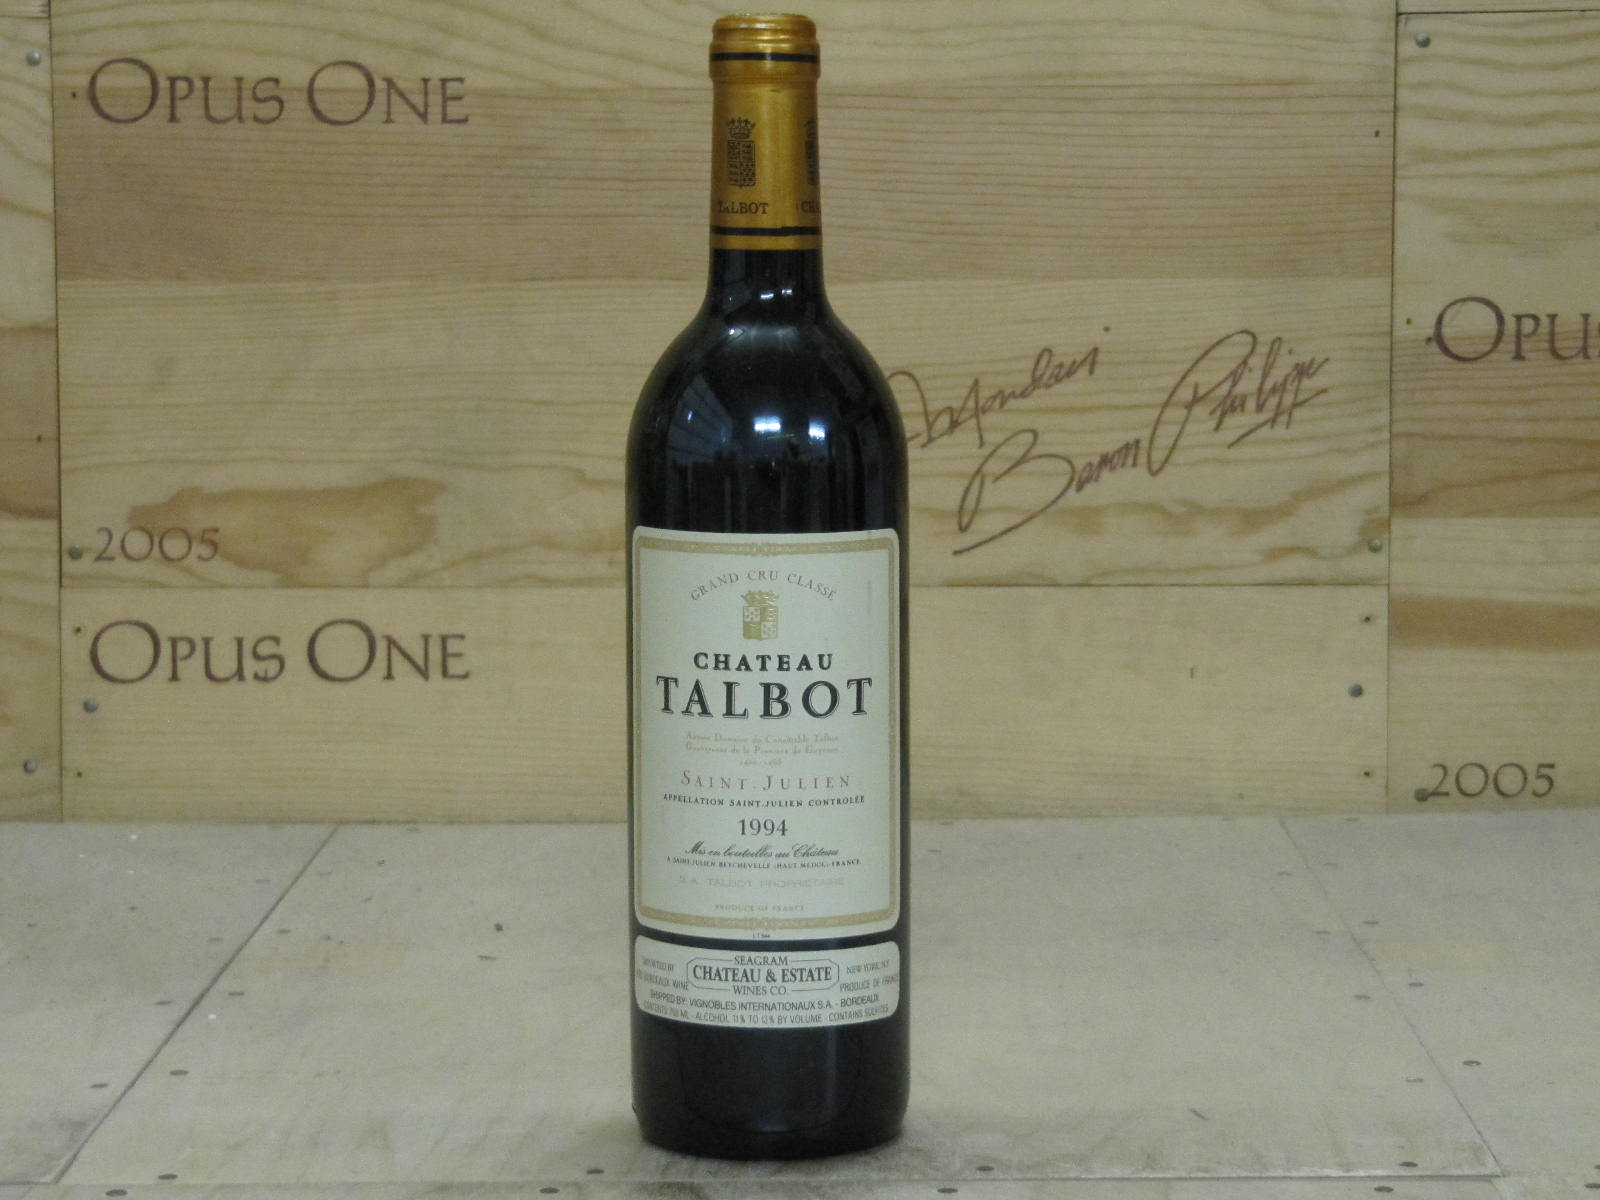 1994 Chateau Talbot Bordeaux, Saint-Julien